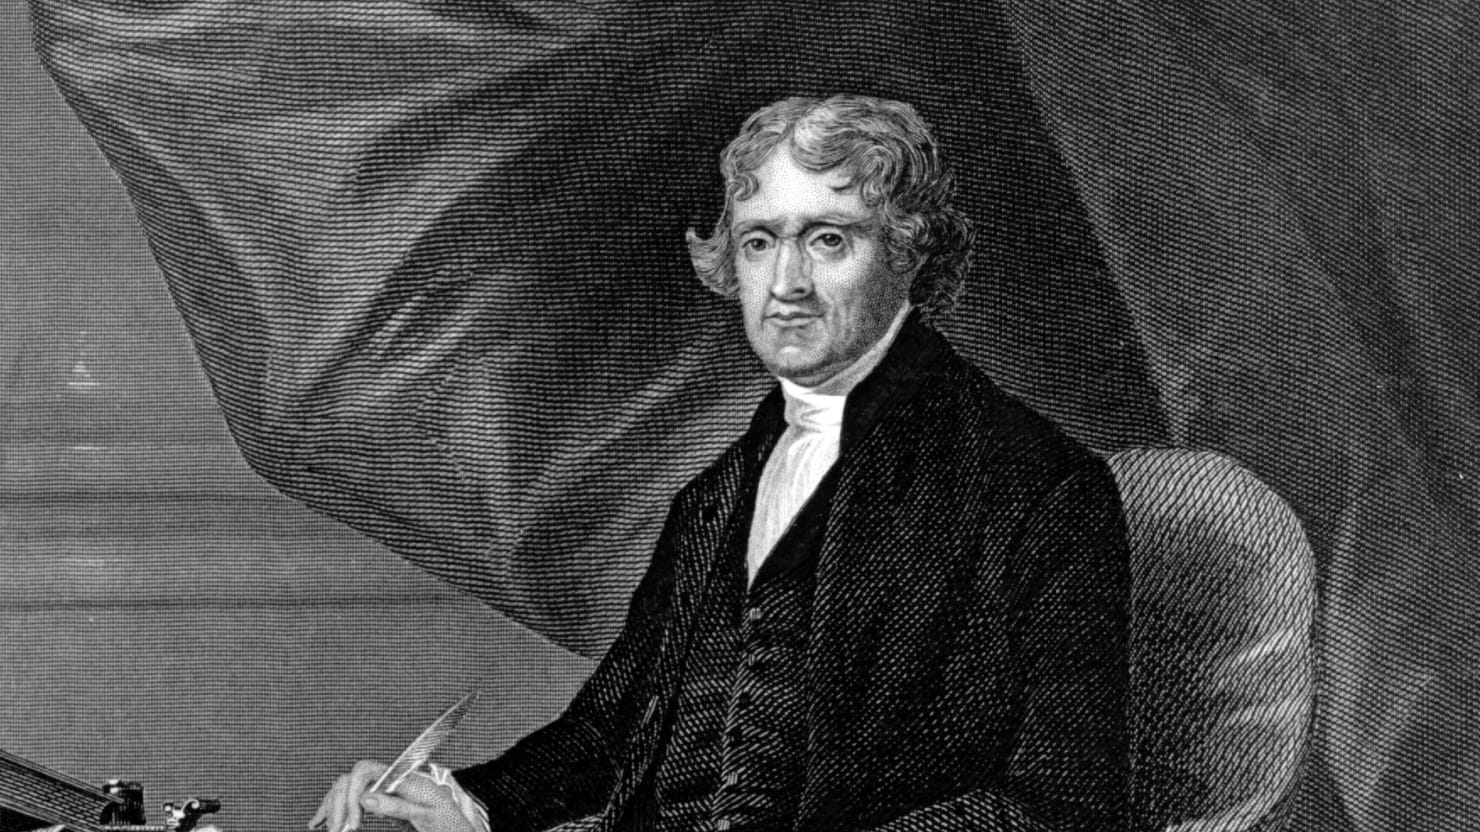 an analysis of the work of thomas jefferson in the united states It was as president of the united states that thomas jefferson had the greatest impact on the indian nations of north america he pursued an indian policy that had two main ends first, jefferson wanted to guarantee the security of the united states and so sought to bind indian nations to the united states through treaties.